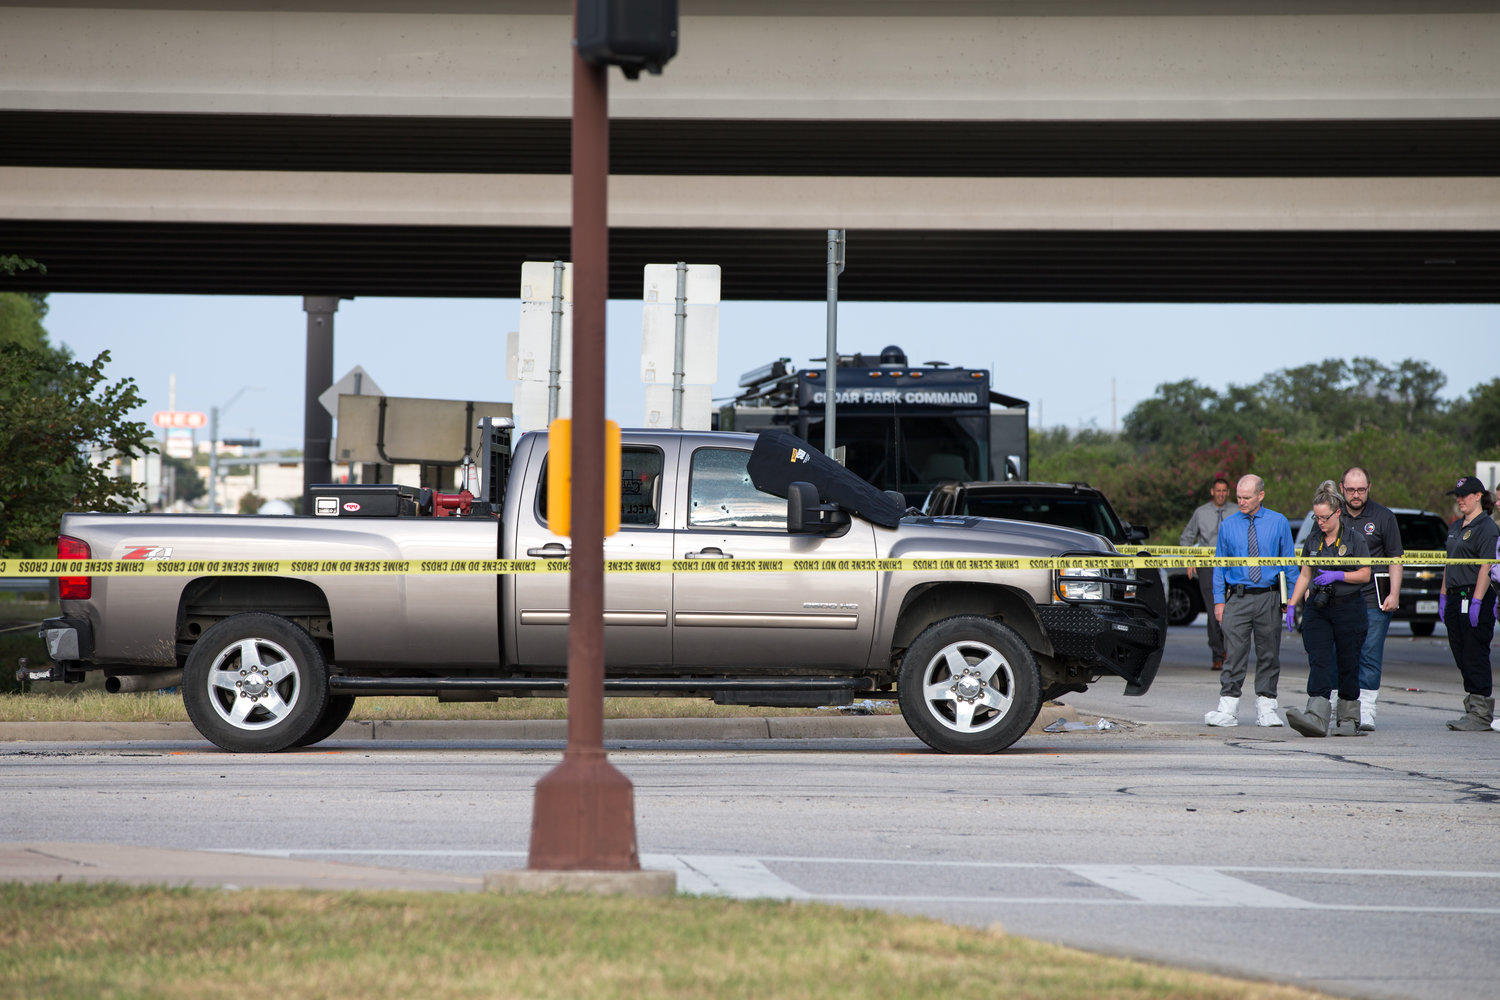 Crime scene investigators work the scene where police say someone shot  into a vehicle around 6 a.m. Saturday, August 3, 2019, killing one person and seriously injuring another, at the intersection of 183A Toll and East Whitestone Boulevard in Cedar Park.